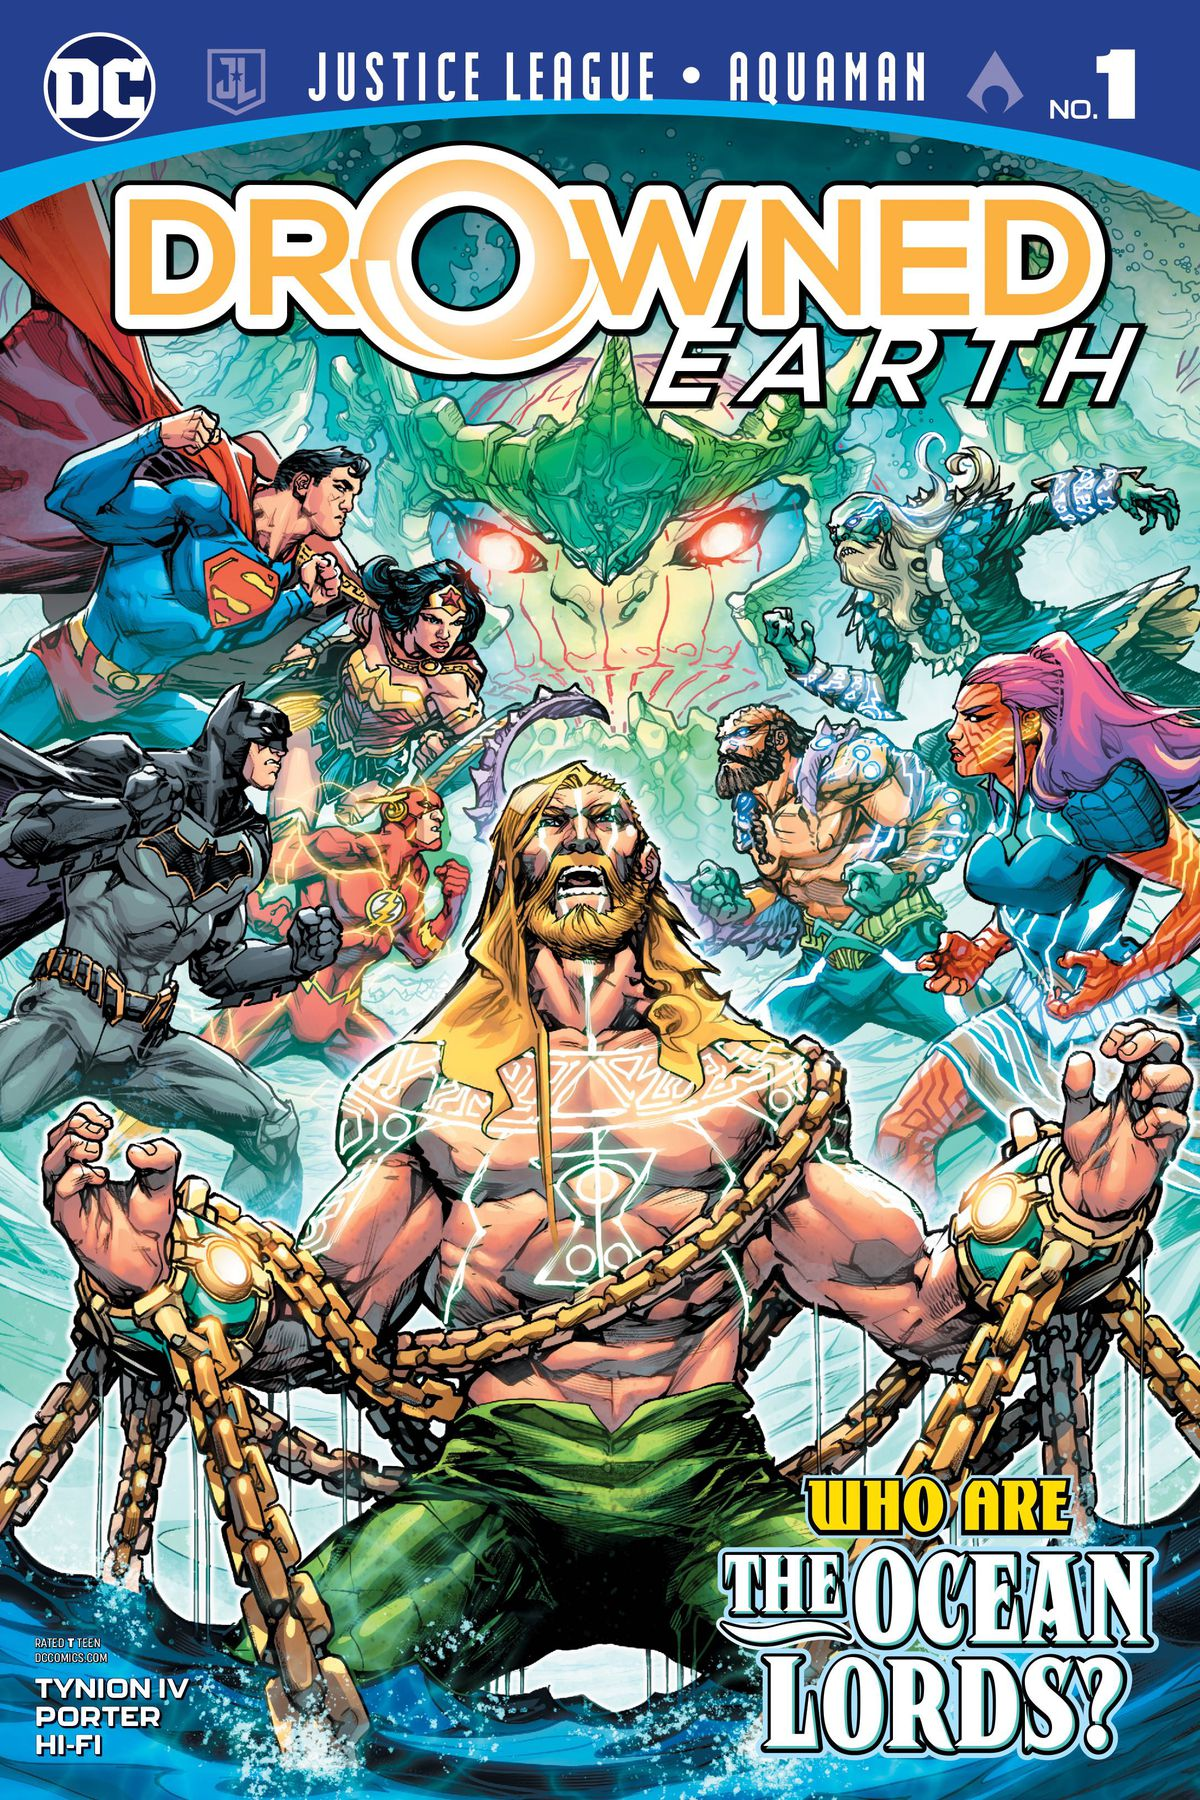 The cover of Justice League/Aquaman: Drowned Earth #1, DC Comics (2018).